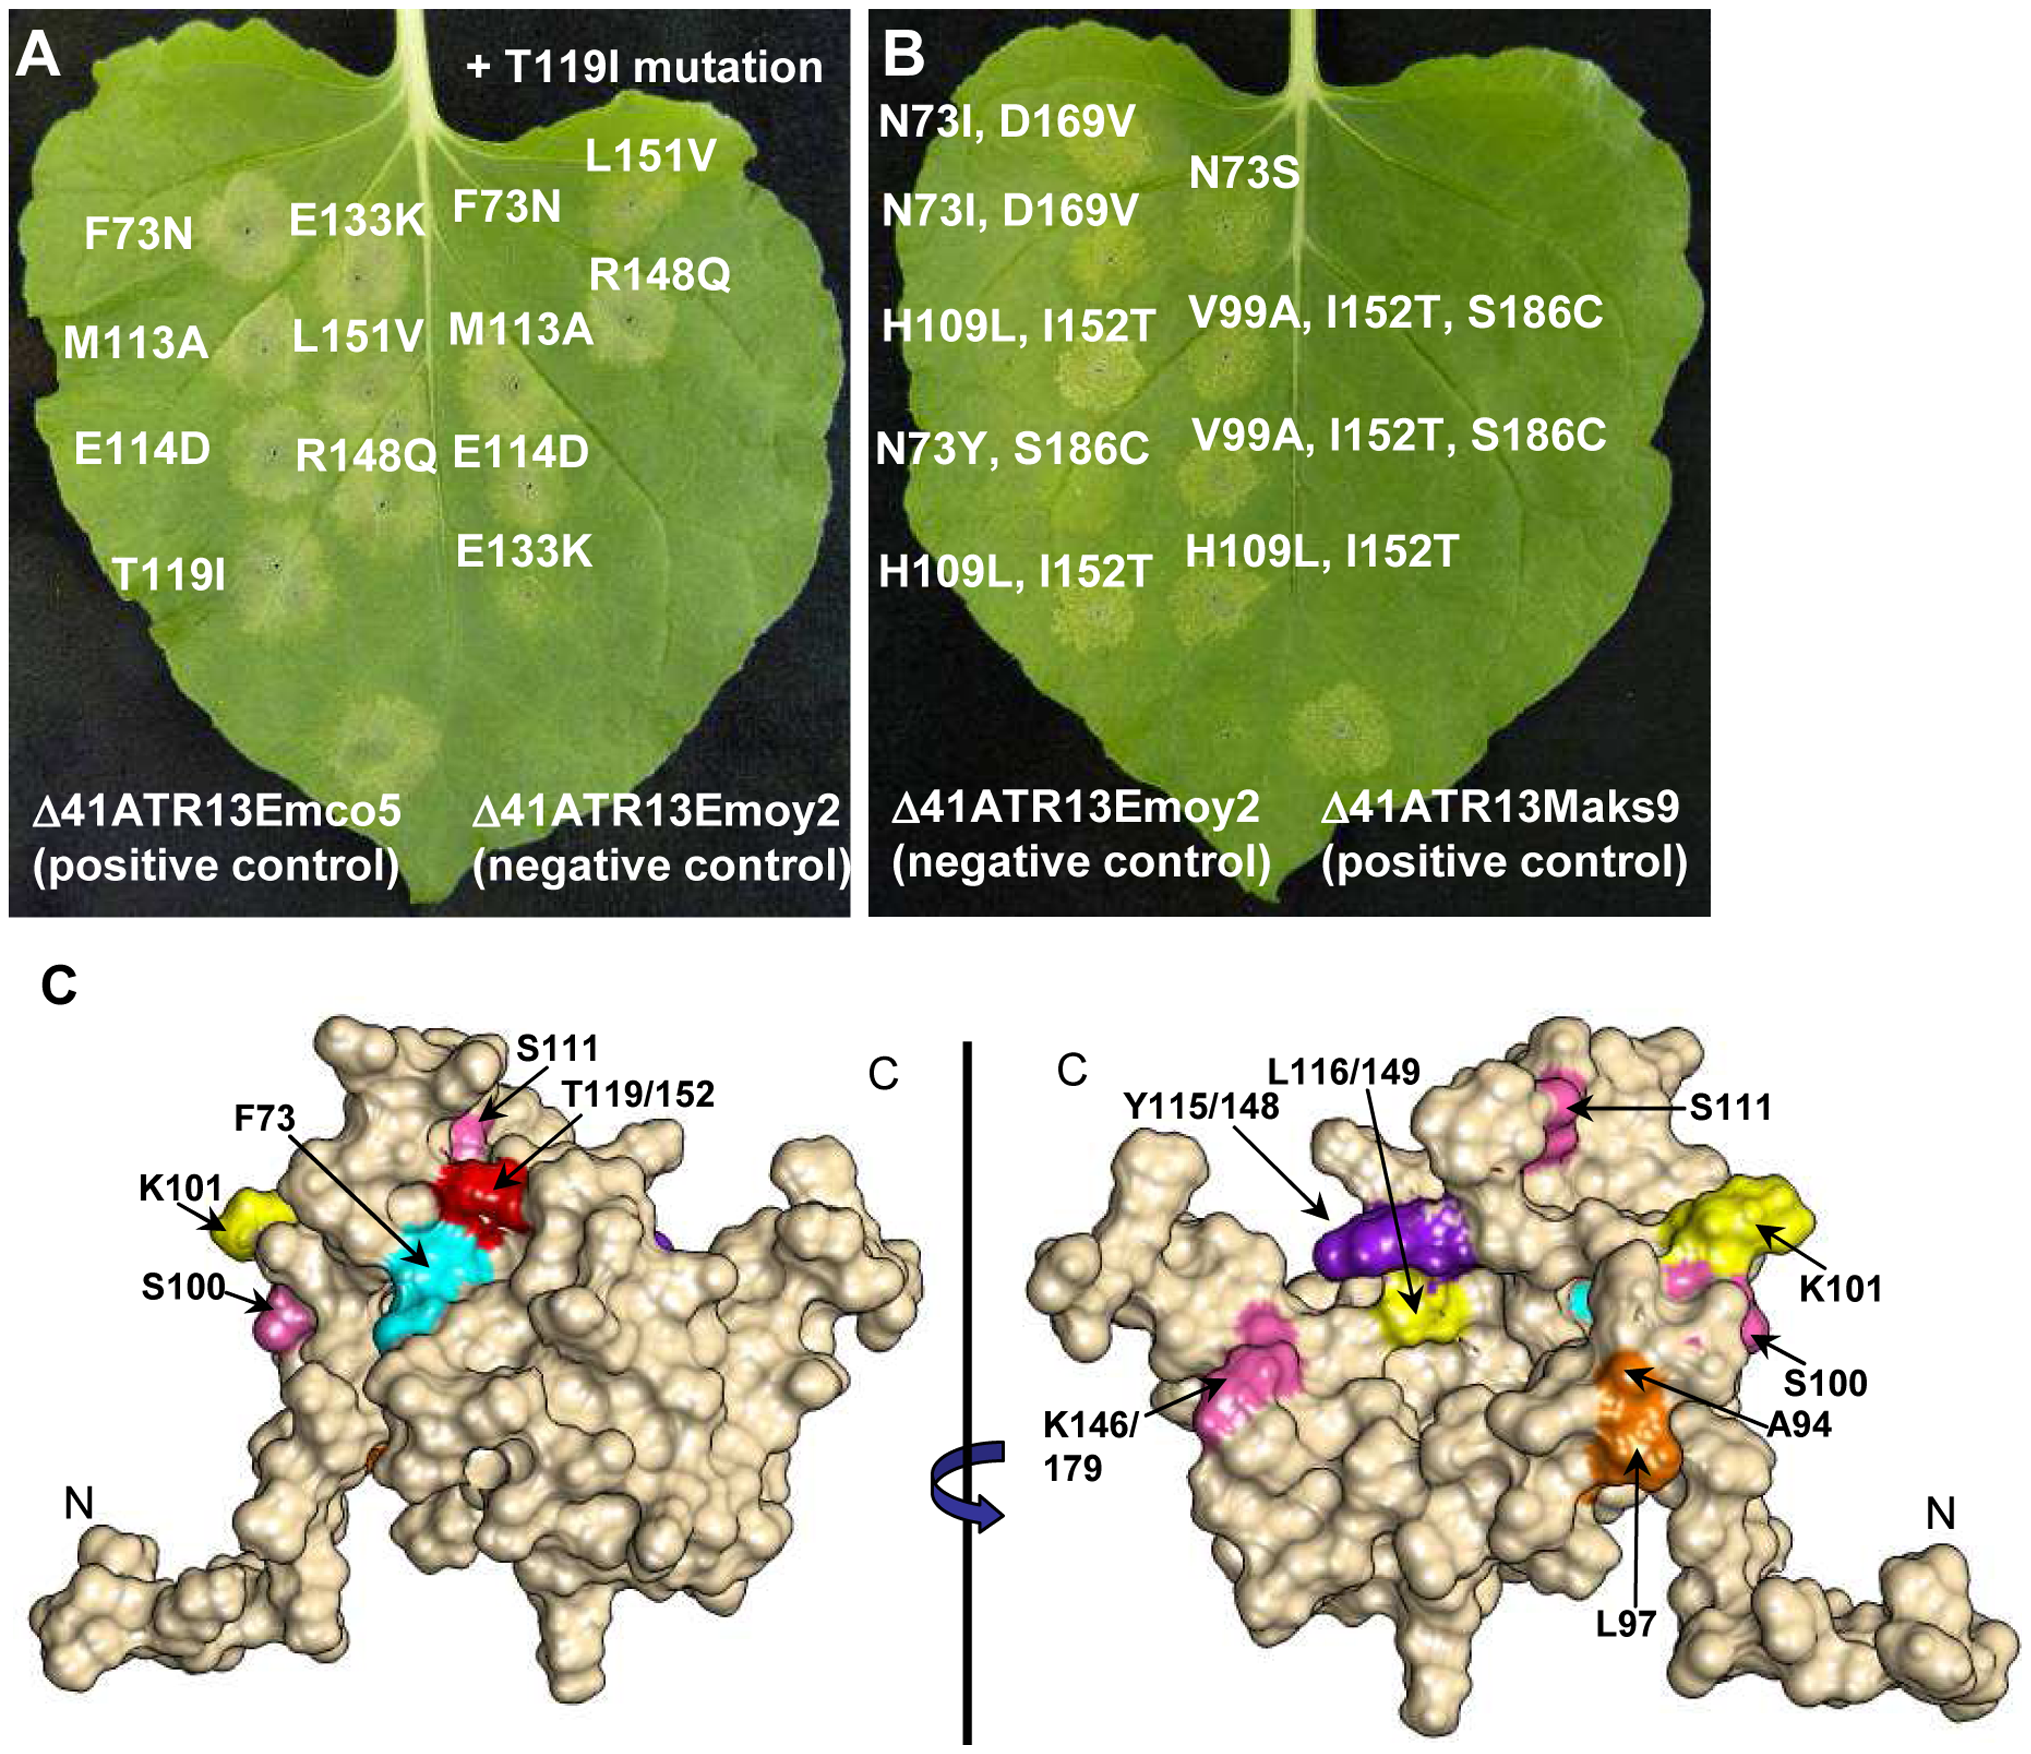 Site-directed loss-of-recognition (LOR) and random gain-of-recognition (GOR) mutagenesis of ATR13 scored for HR in RPP13 transgenic N. benthamiana plants.